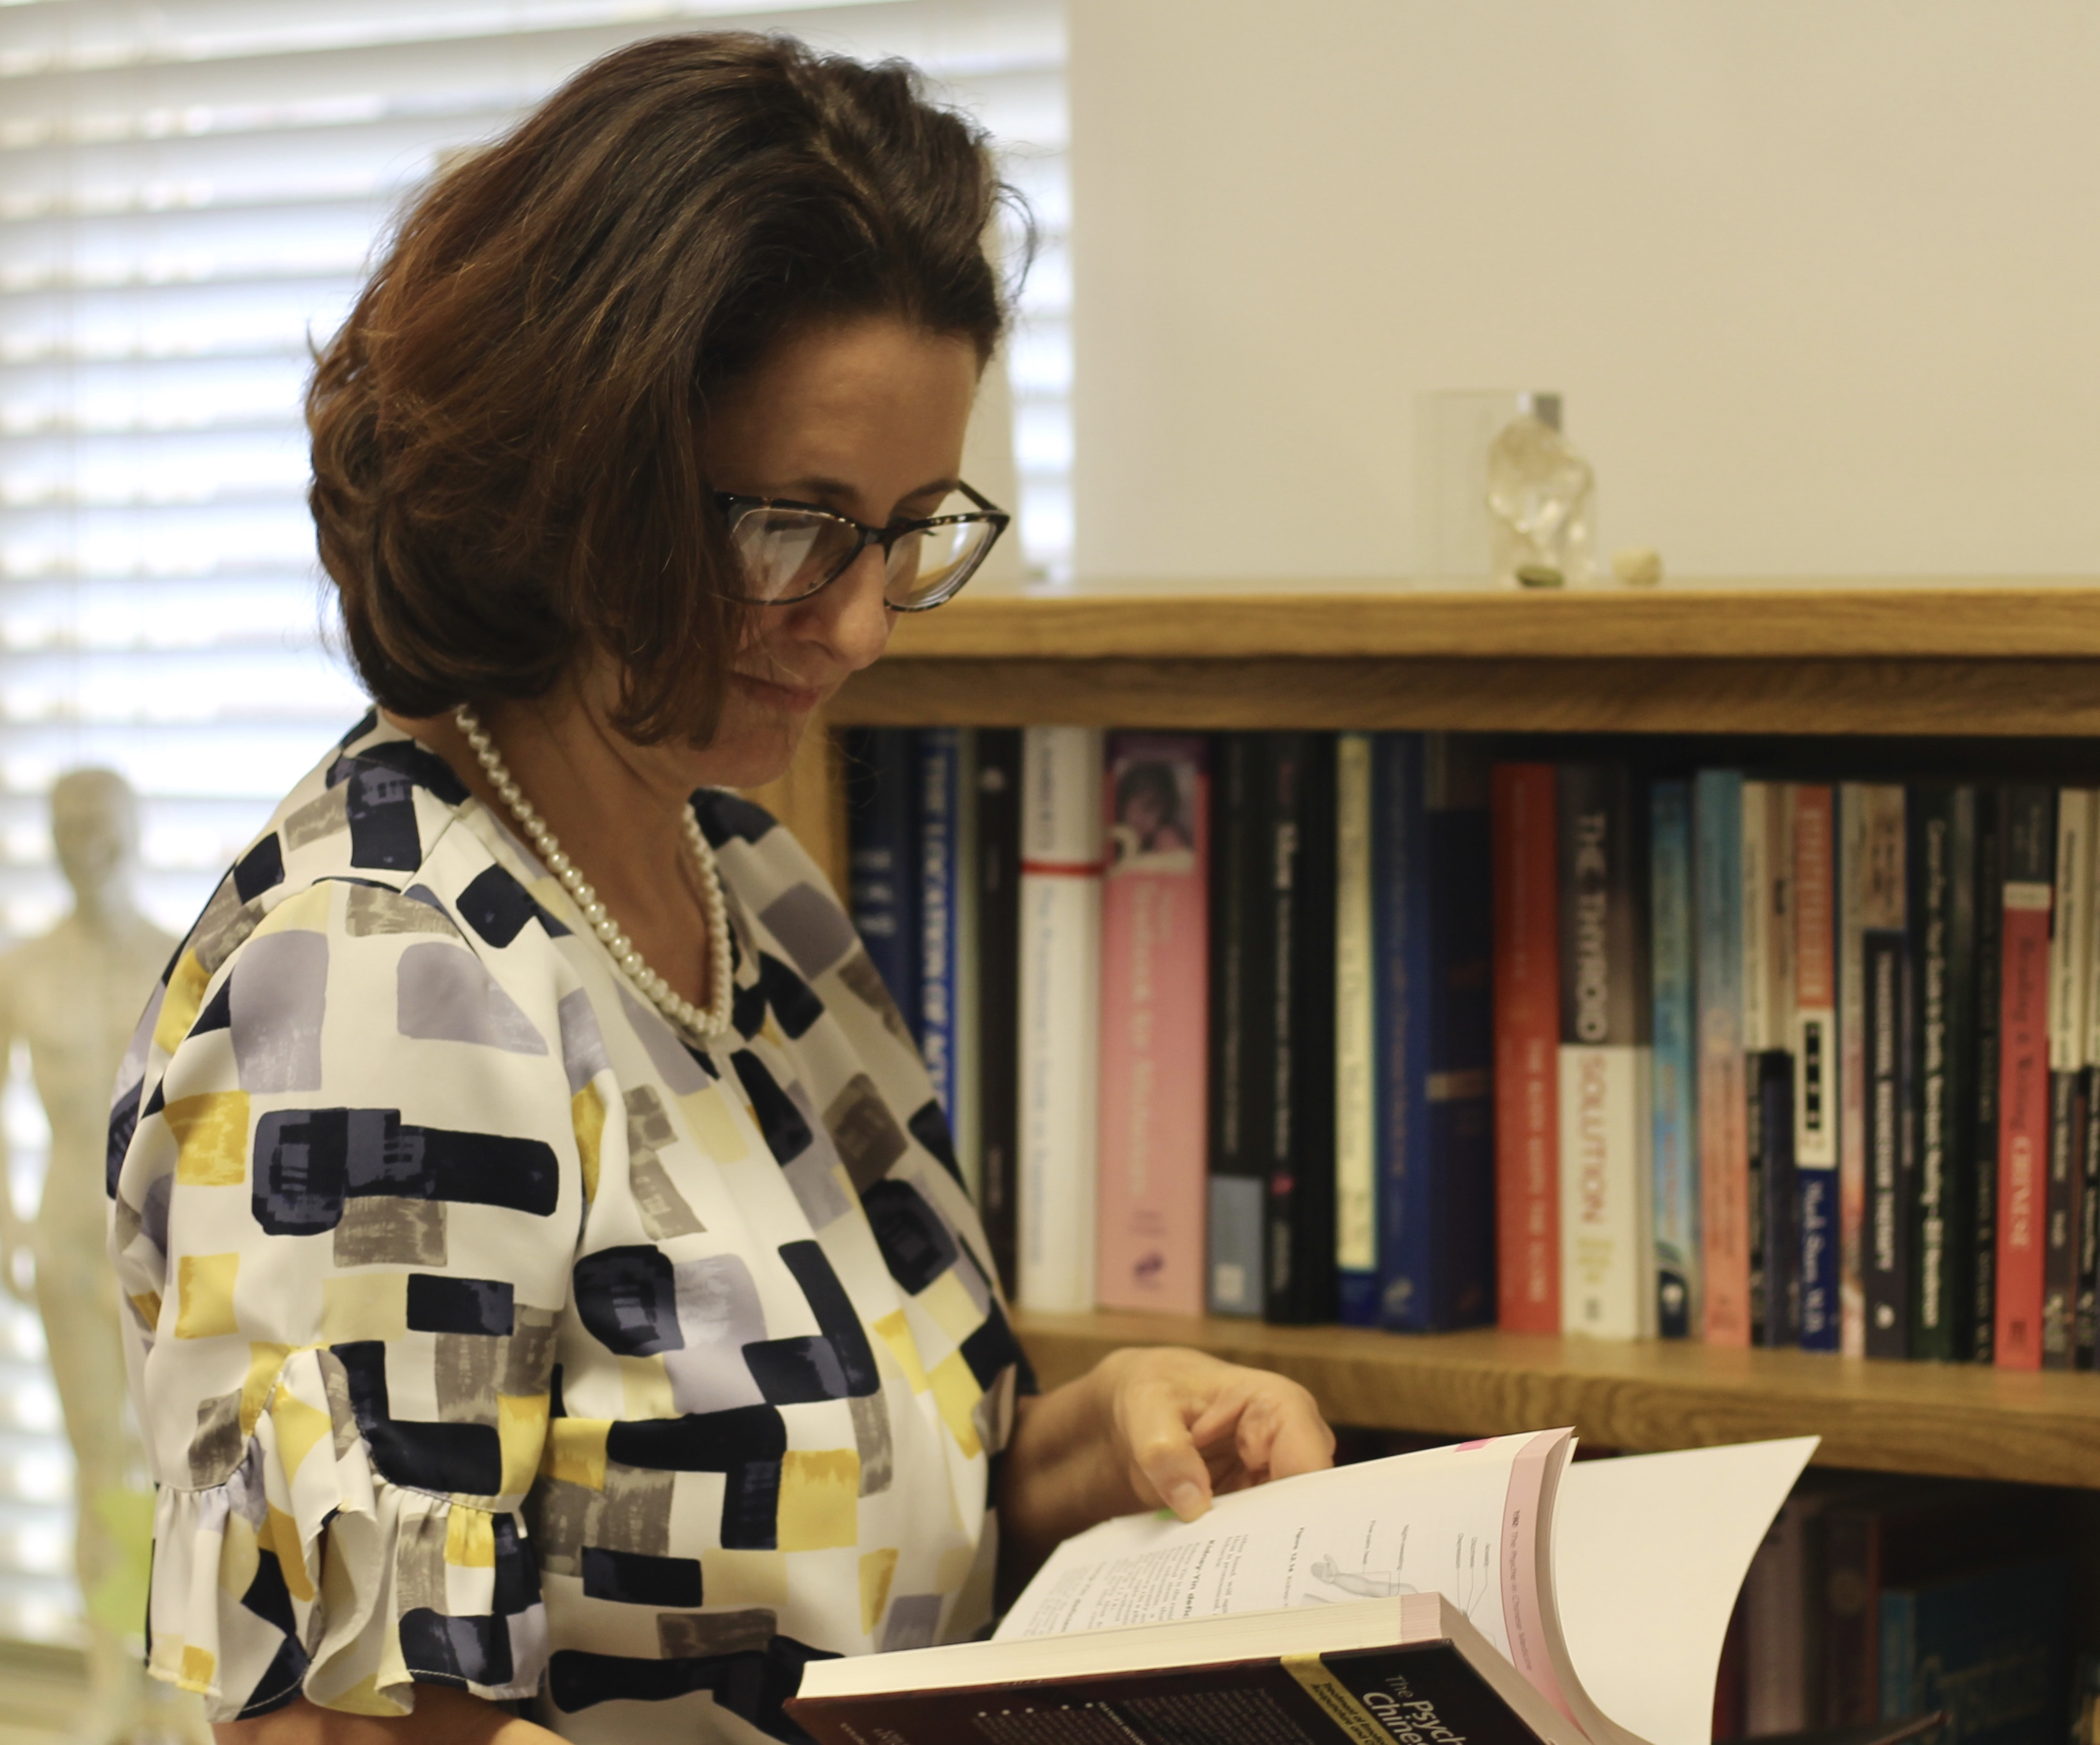 A photo of a lady standing by a bookshelf reading a book